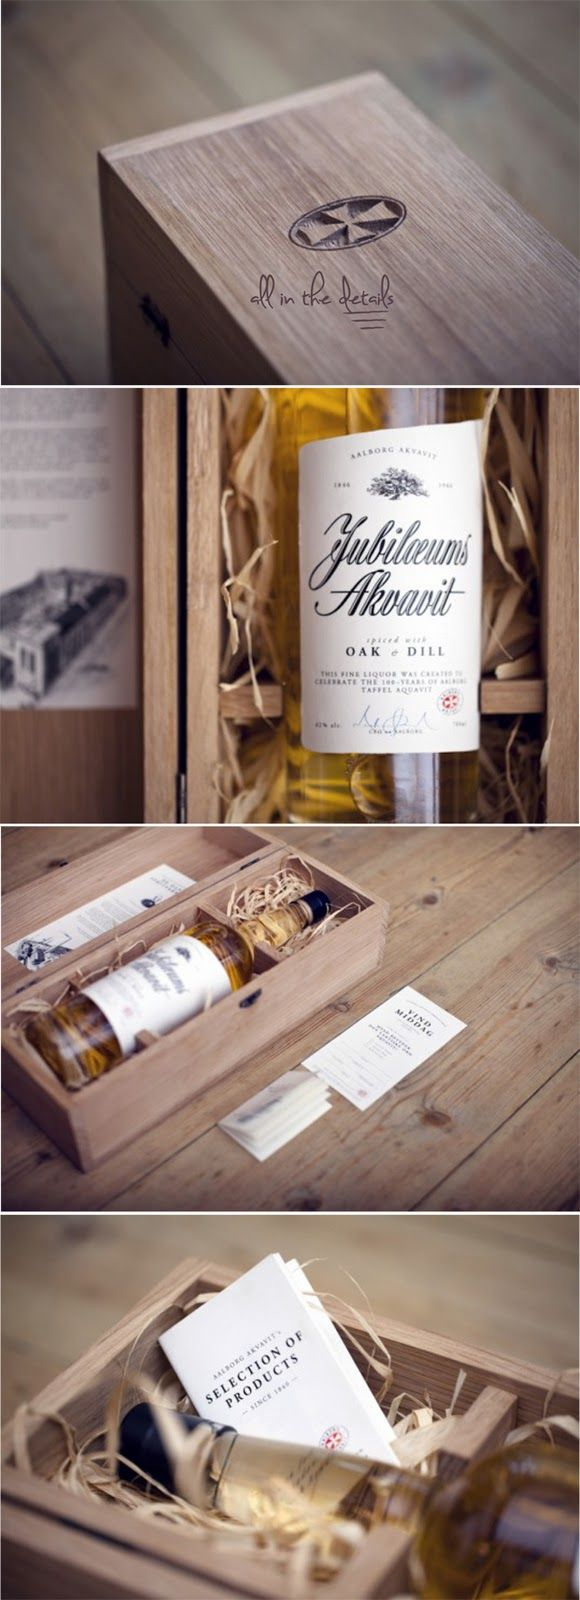 wine box nice package pinterest wine boxes wine and box